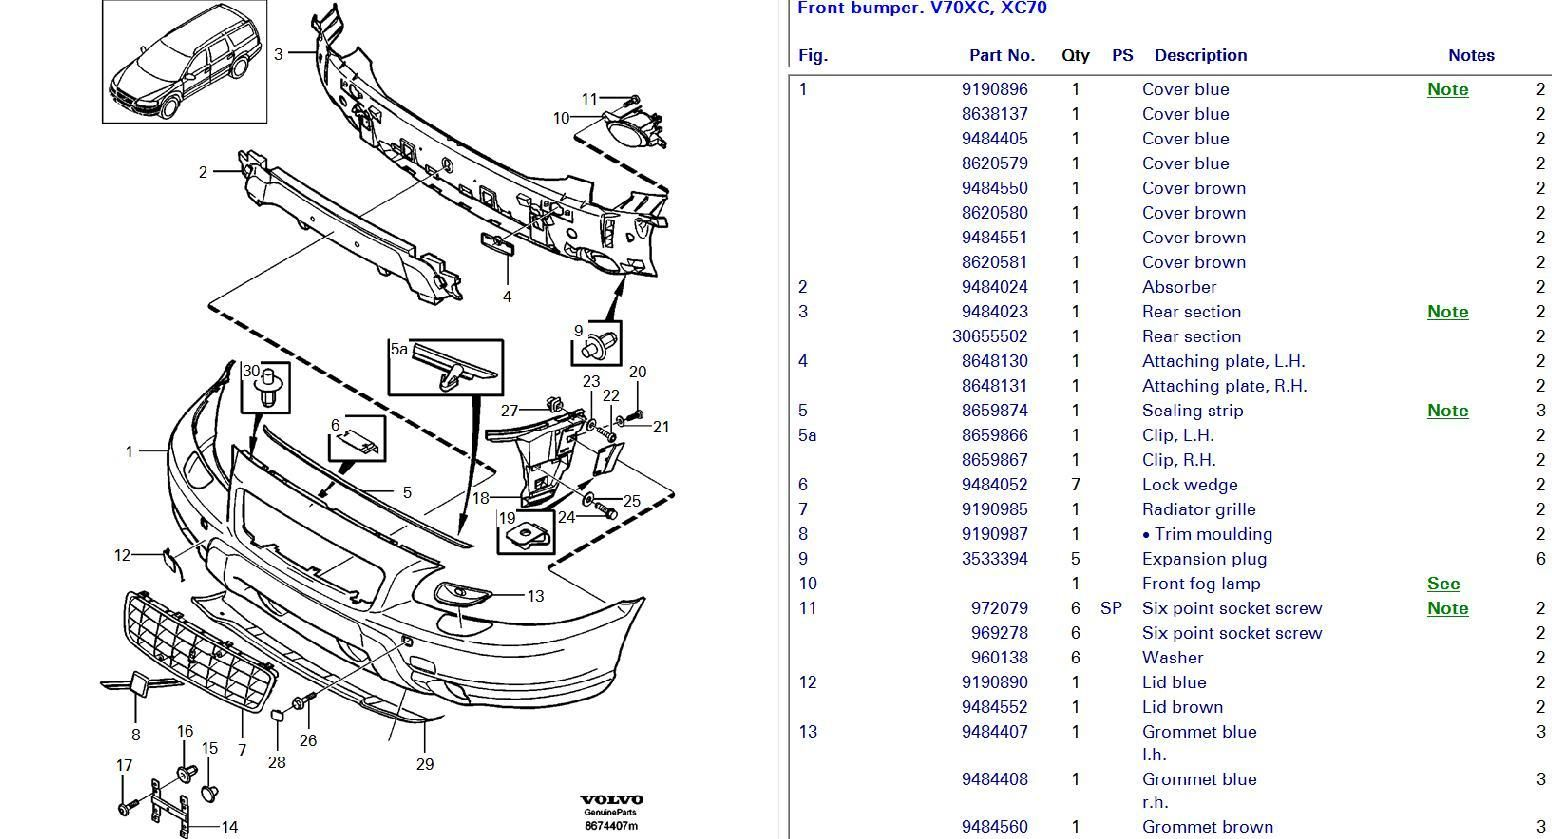 Service manual [How To Remove Front Bumper 2006 Volvo Xc70